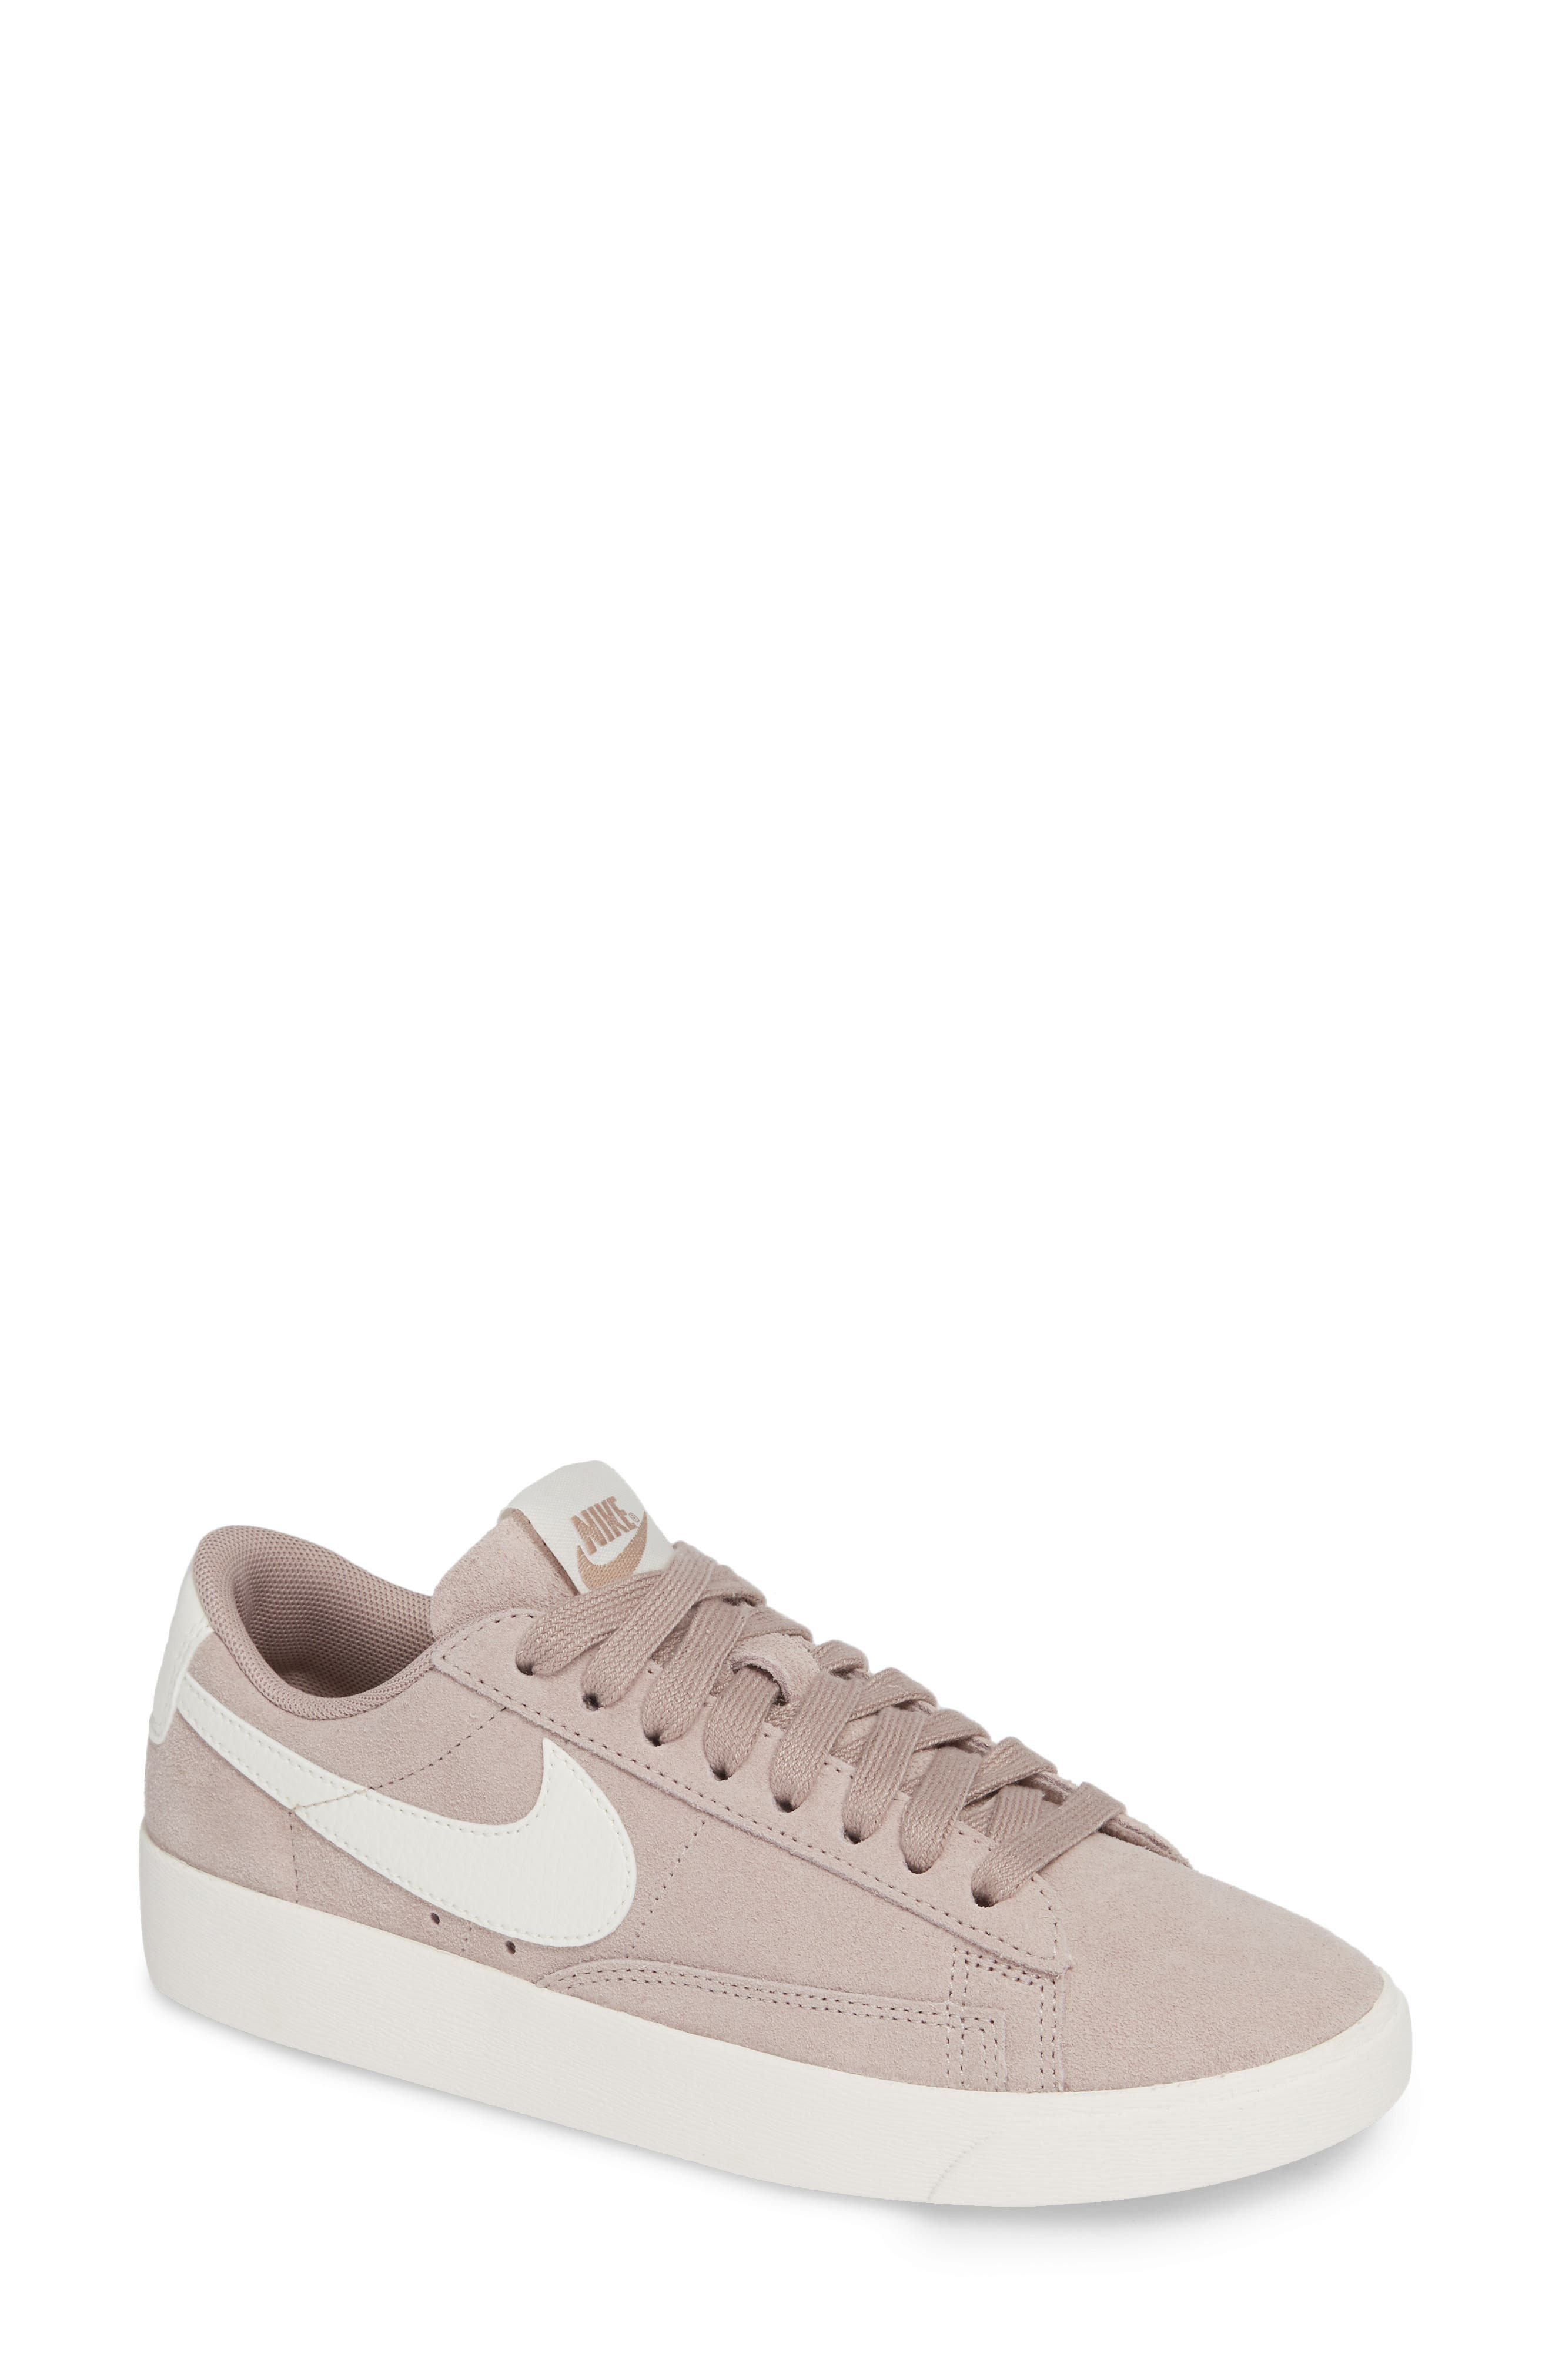 Blazer Low Sneaker,                         Main,                         color, DIFFUSED TAUPE/ SAIL